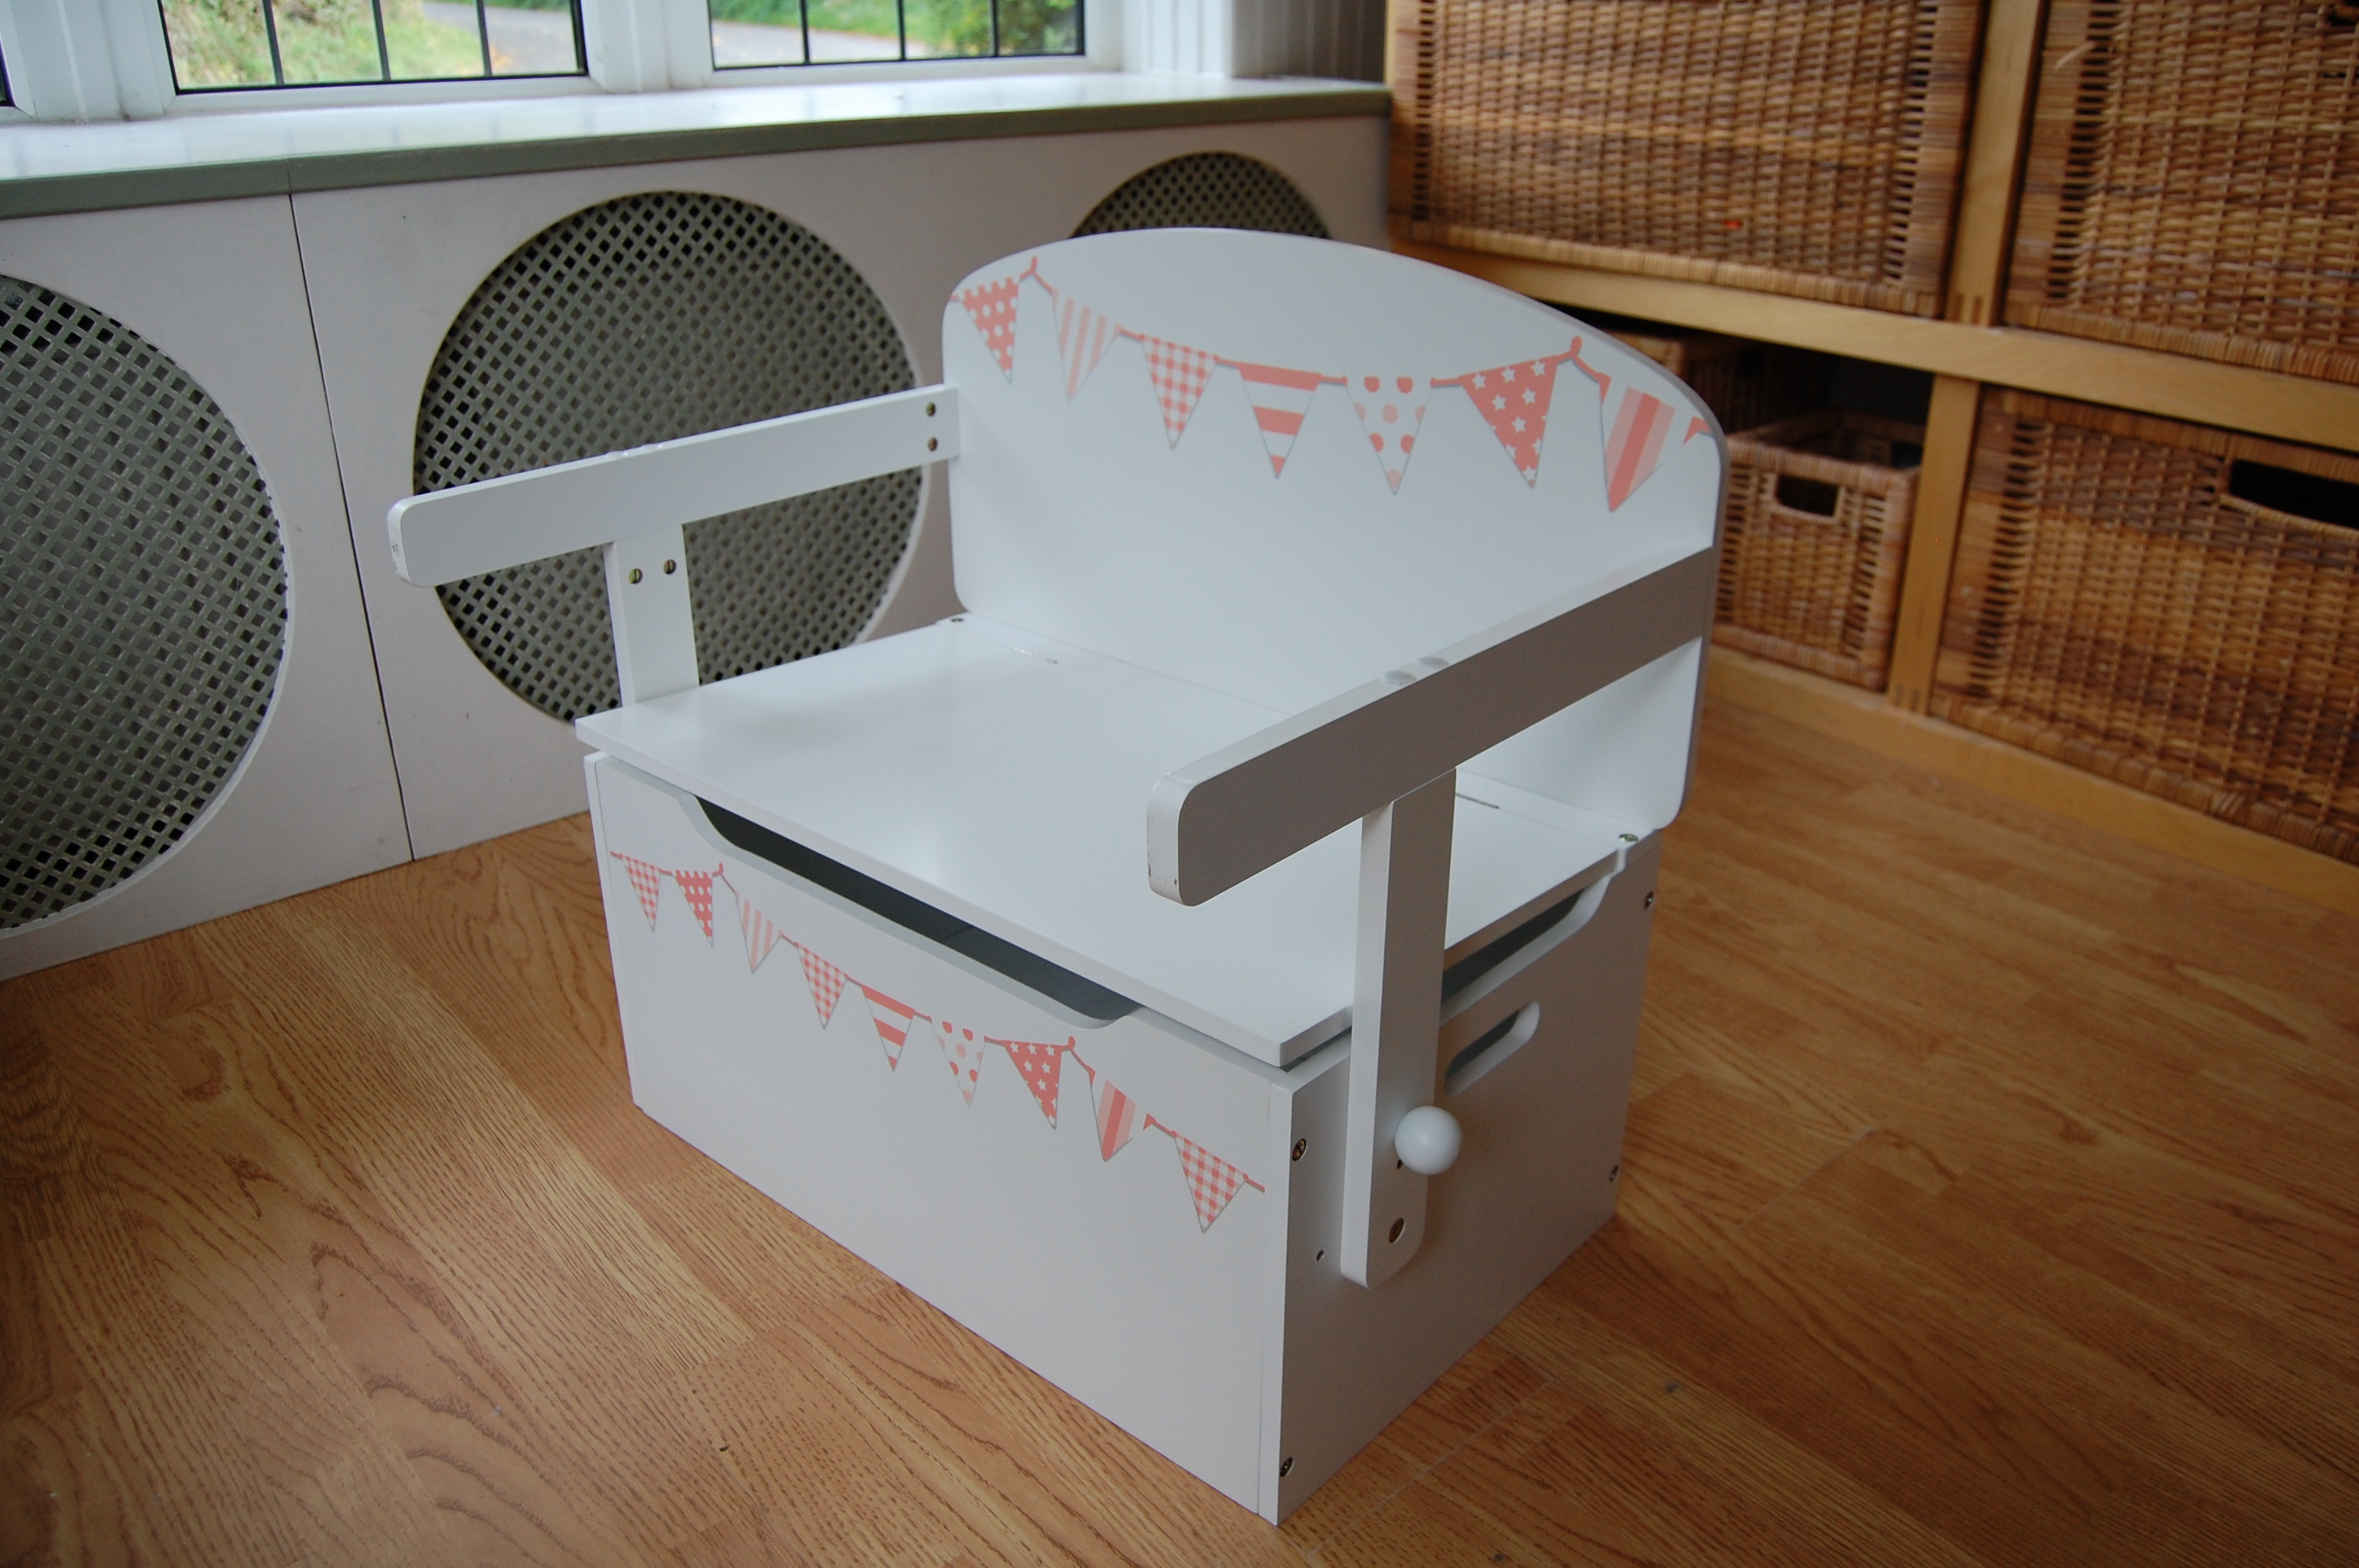 As a toy storage box & bench seat